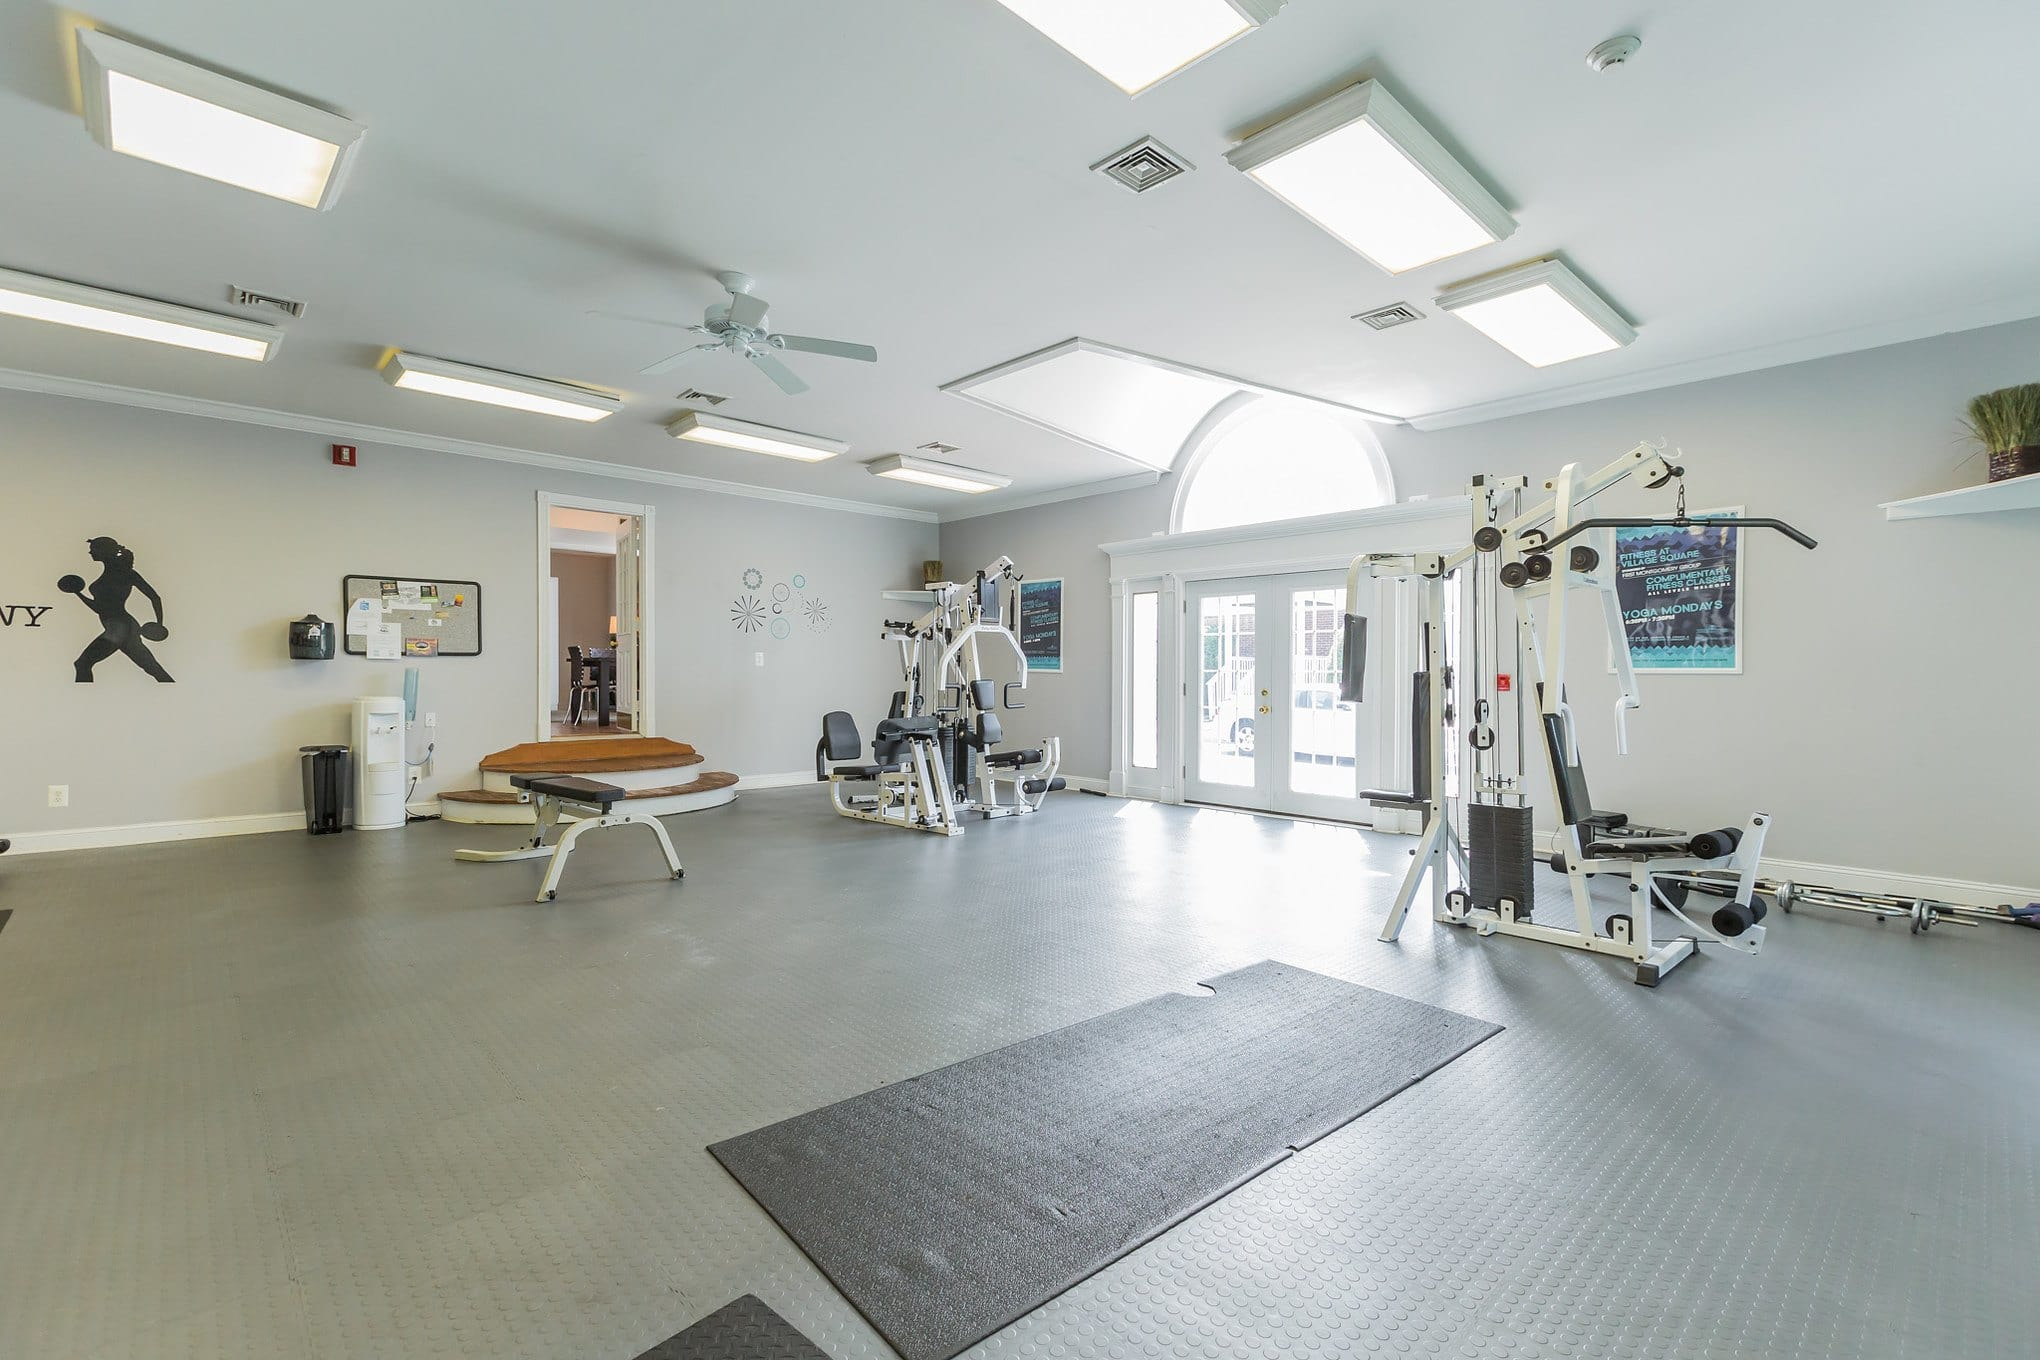 Gym Work Out Room at  Village Square Apartments in Mount Holly, NJ